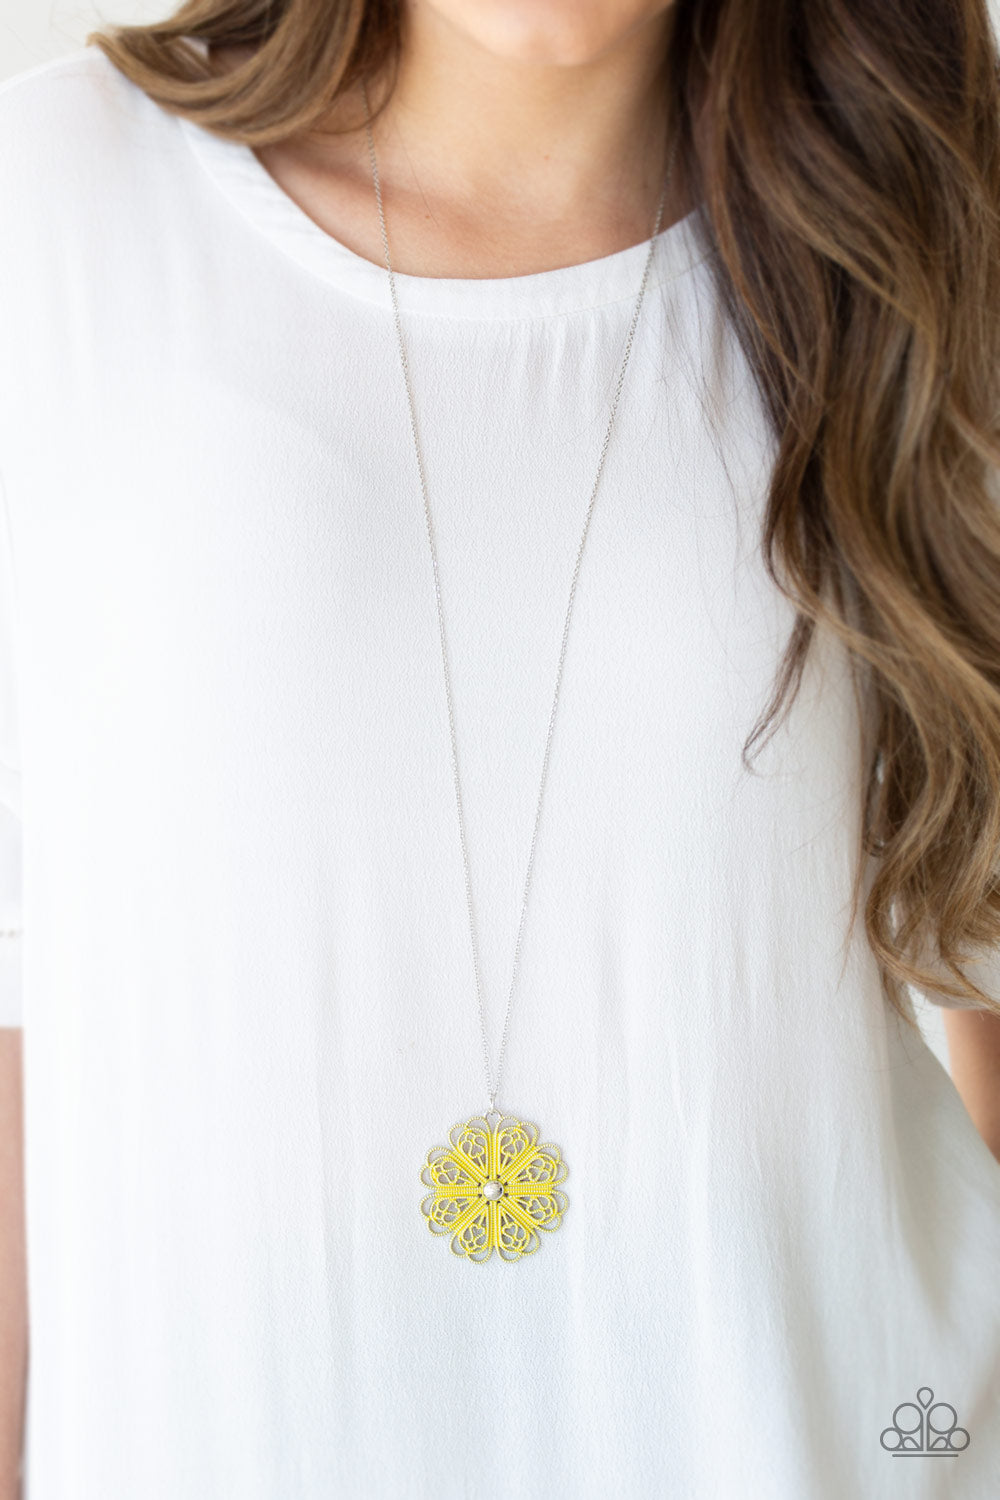 Paparazzi Jewelry & Accessories - Spin Your PINWHEELS - Yellow Necklace. Bling By Titia Boutique